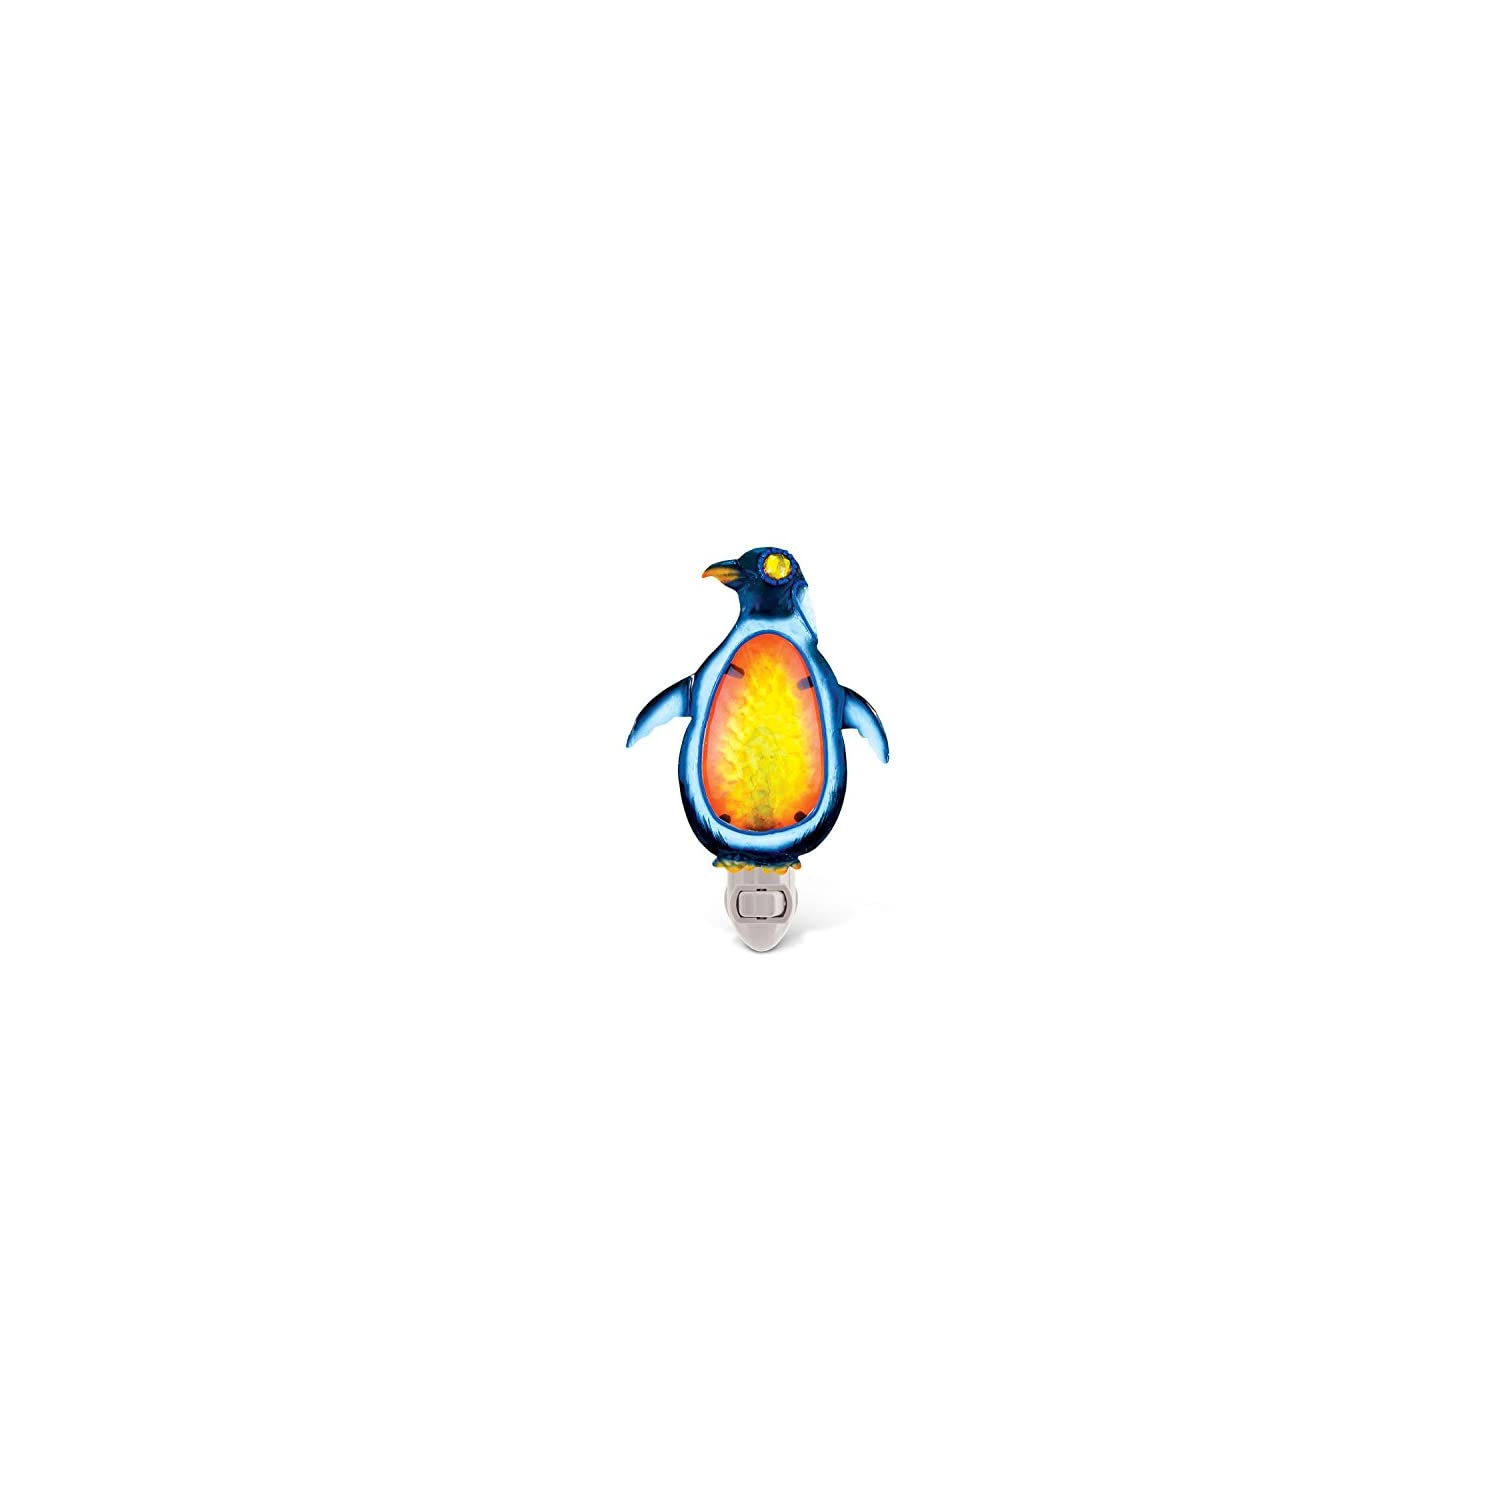 Puzzled Glass Art LED Night Light, Energy Efficient Plug in Decorative Socket Lamp, Manual On & Off Portable Light for Stairway, Bedroom, Bathroom, Nursery, Home Accessory & Kitchen Decor – Penguin